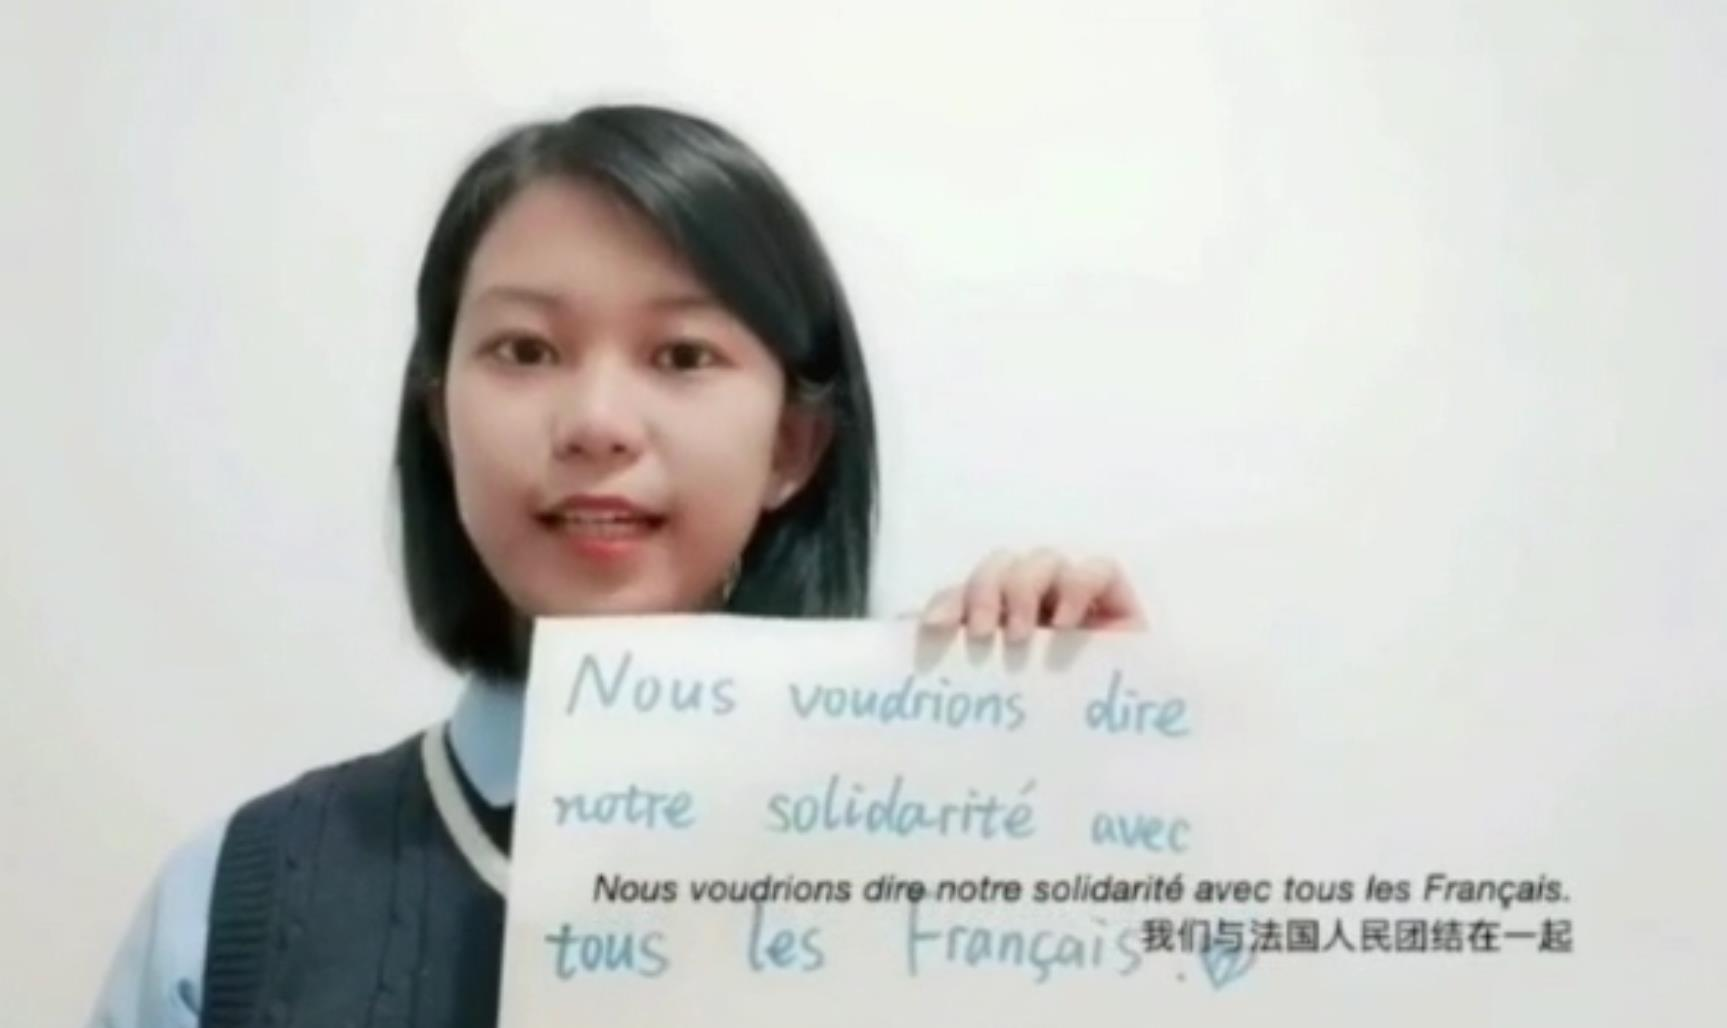 Chinese students share protective masks, courage to defeat COVID-19 with French peers